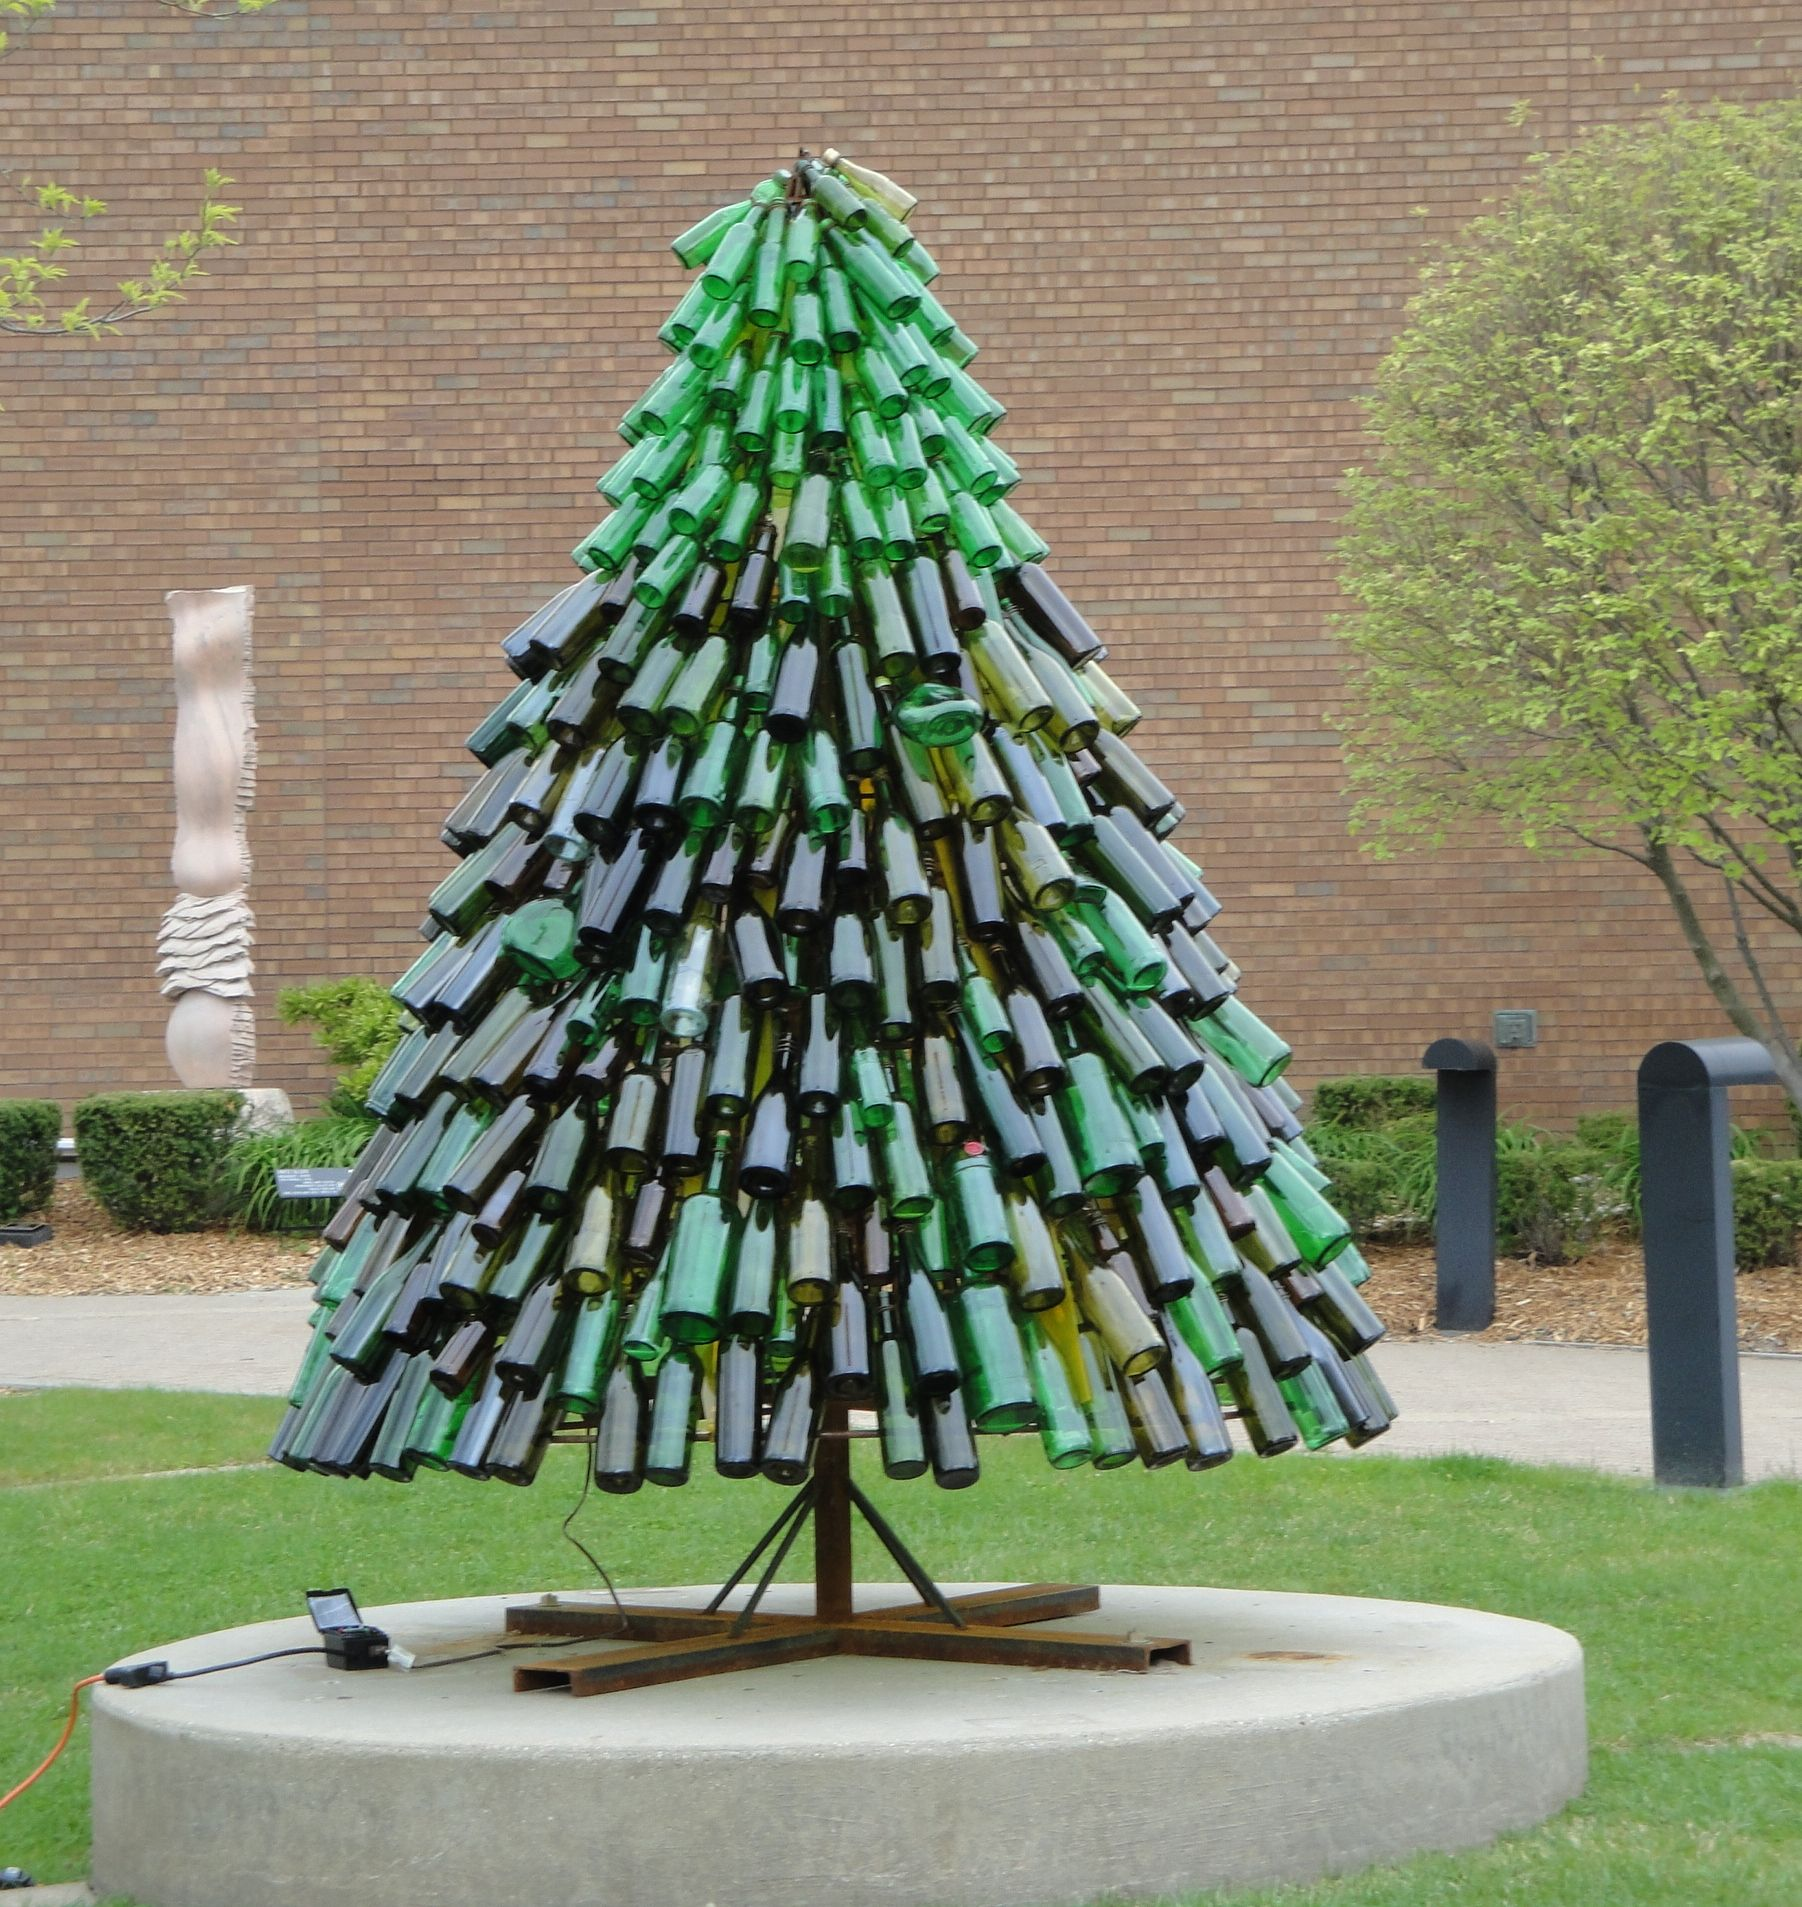 Wine bottle Christmas tree. | Misc | Pinterest | Wine bottle ...